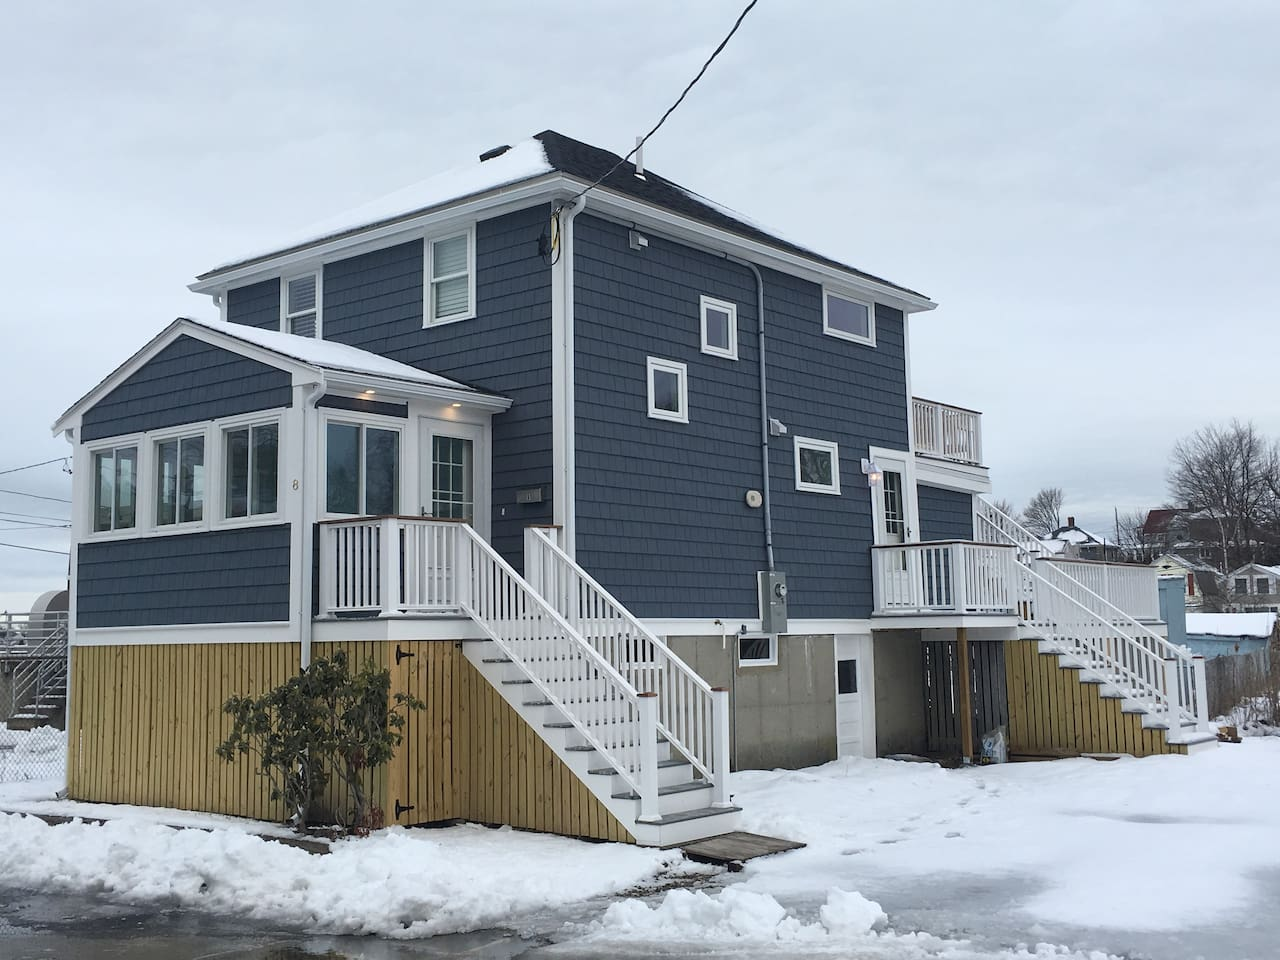 Newly remodeled home in desired North Weymouth neighborhood overlooking a marsh and ocean